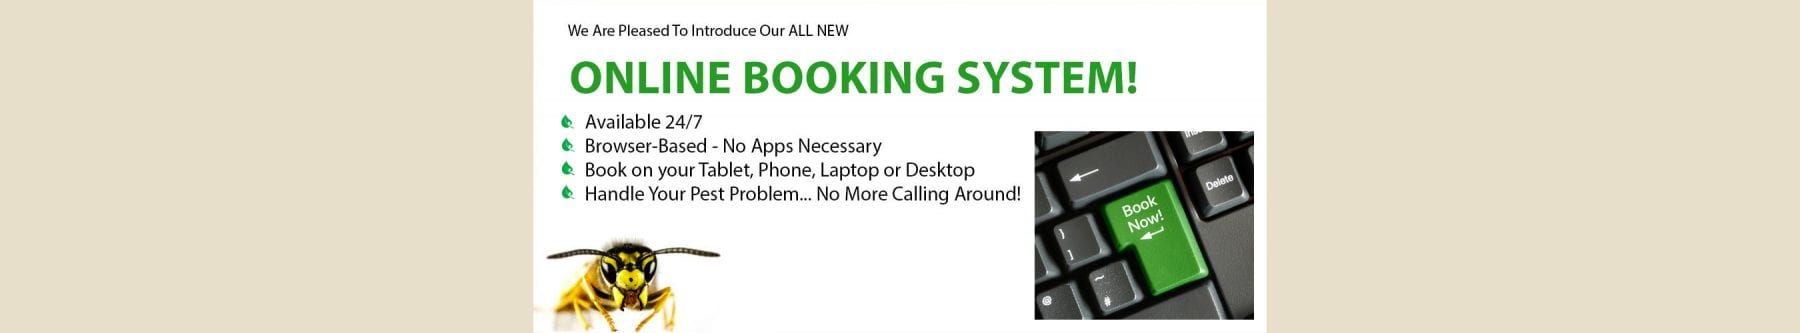 online-booking-slide